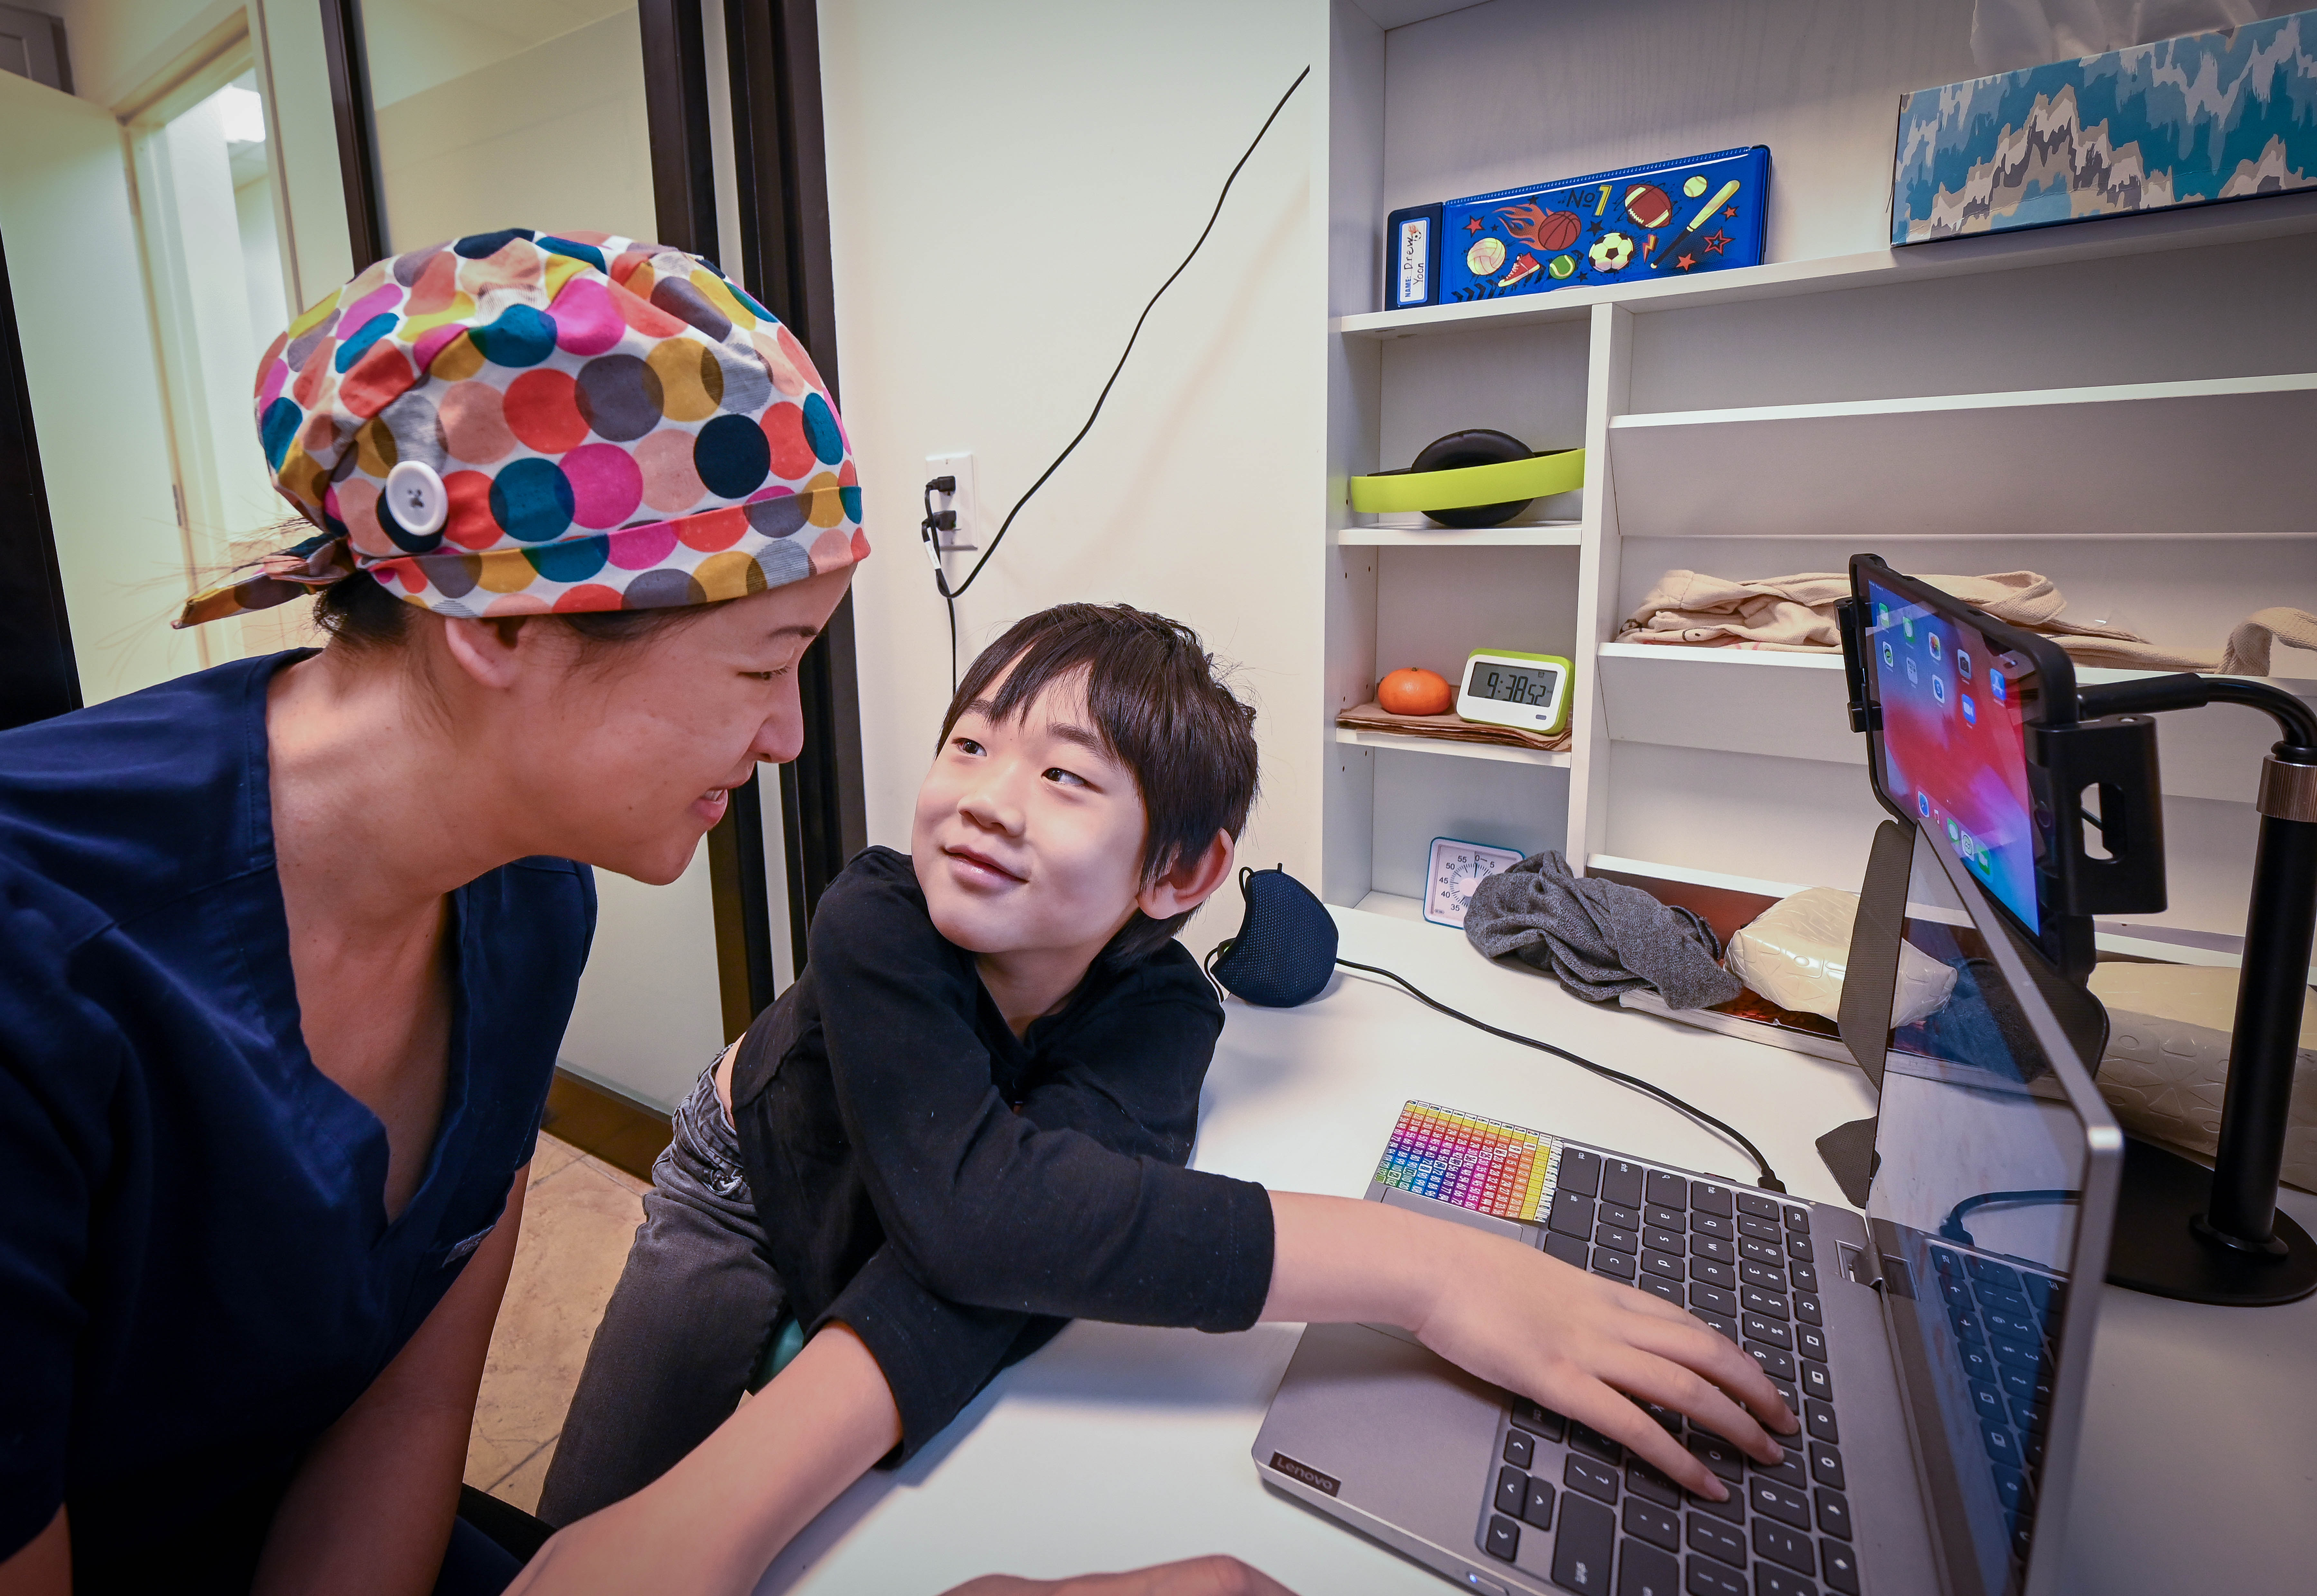 Nancy King is a NYC Ear, Nose and Throat doctor who has been taking her son Drew to her small office to do his online schooling.